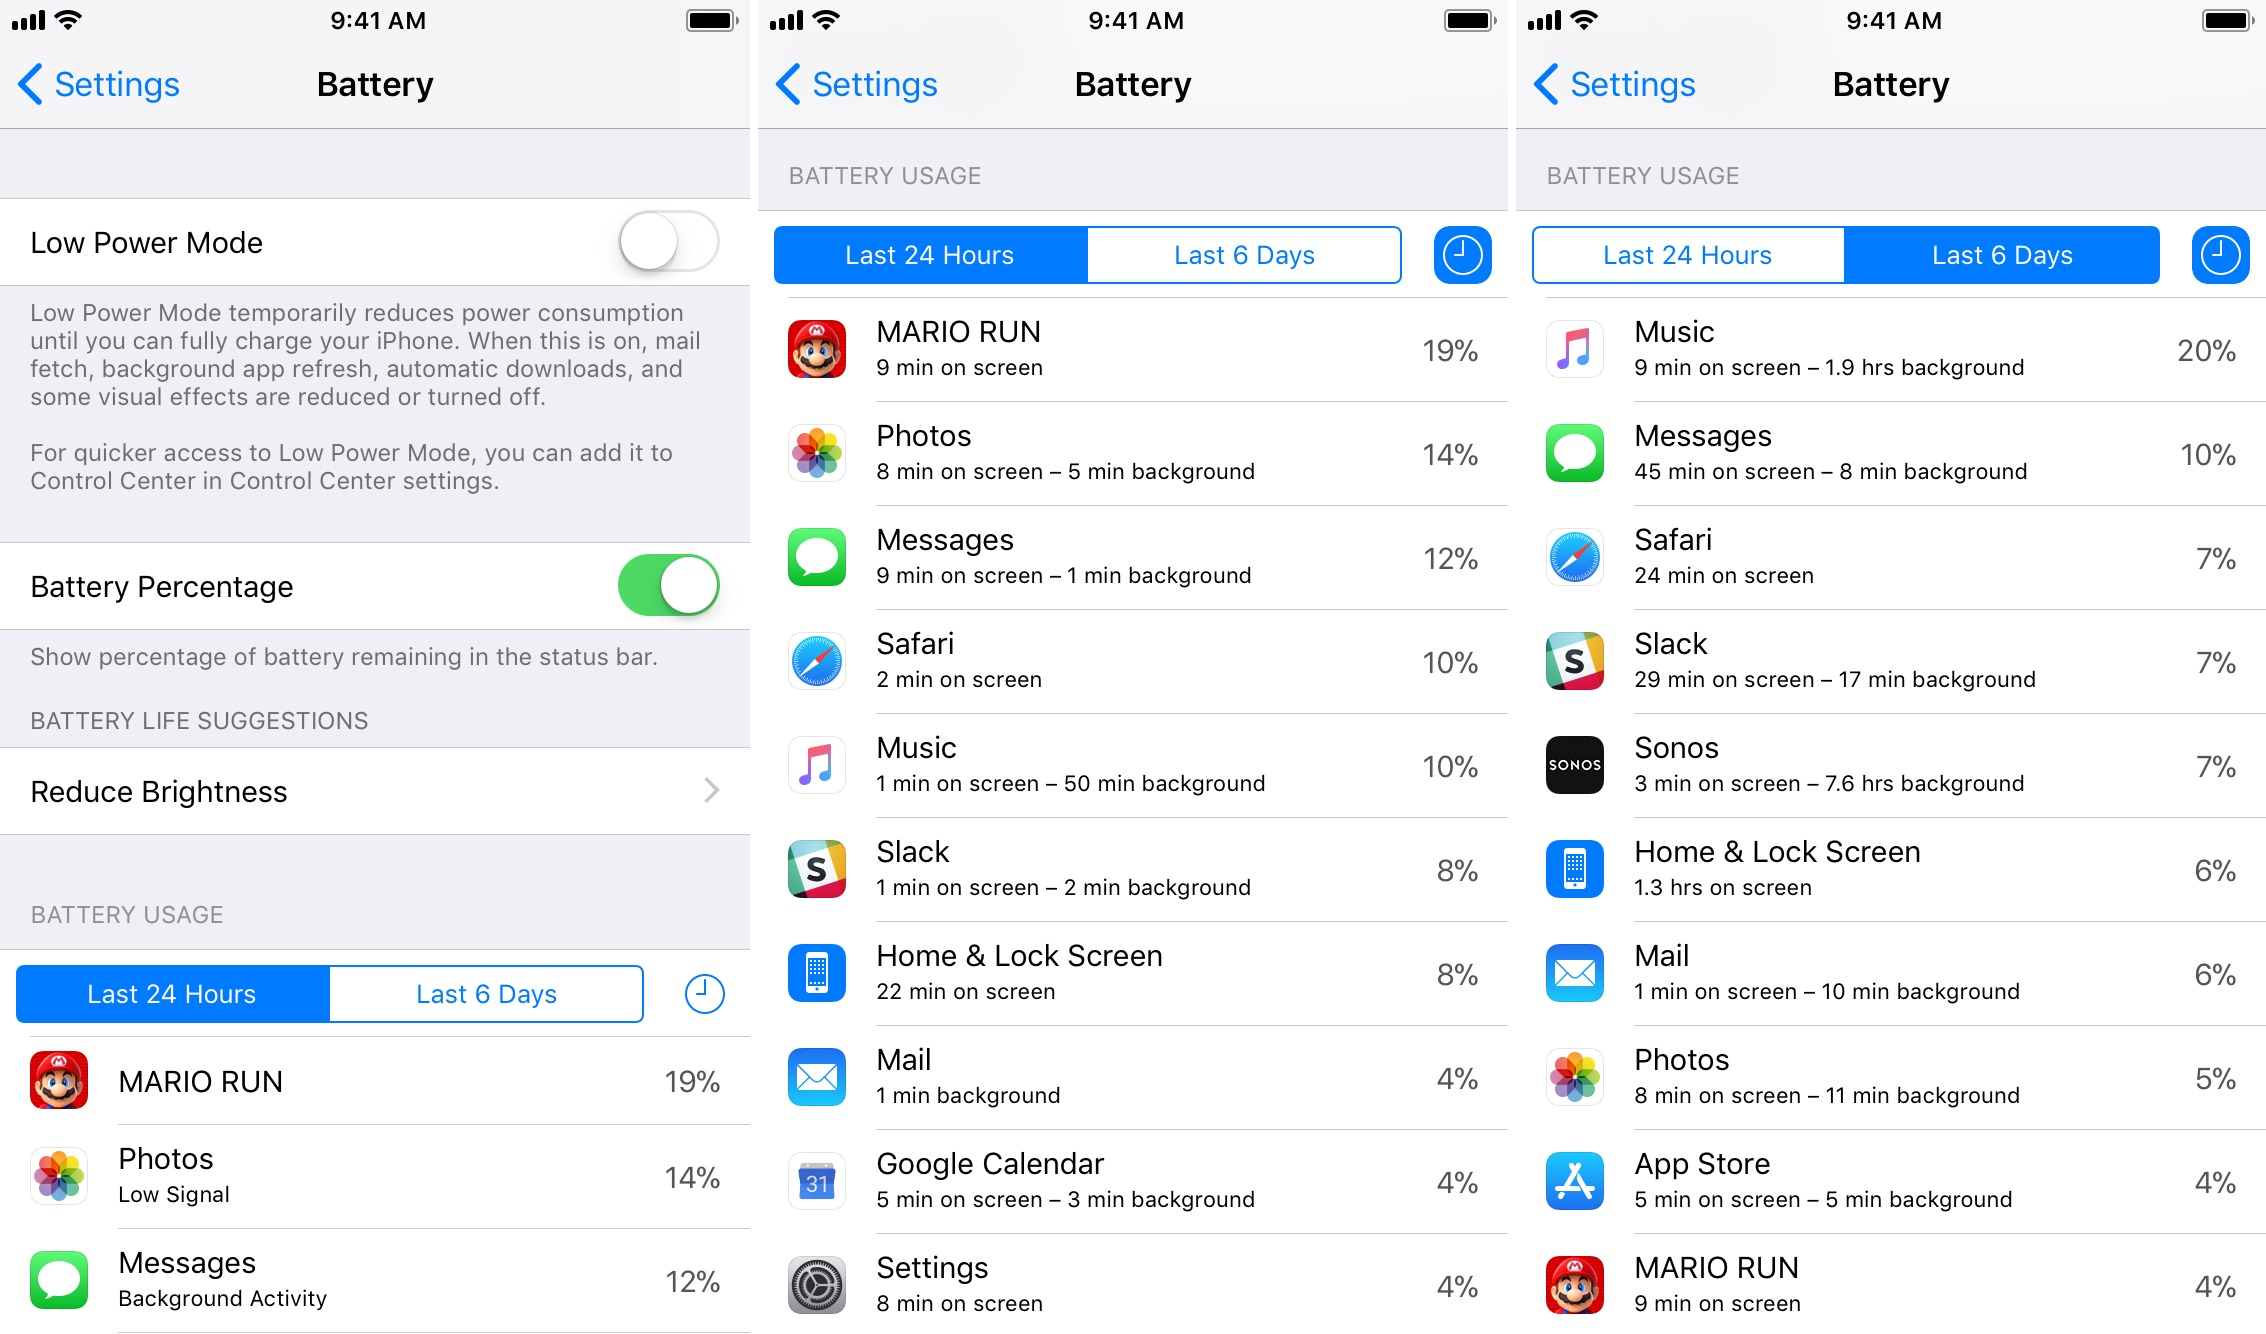 apple mail downloading messages paused on battery